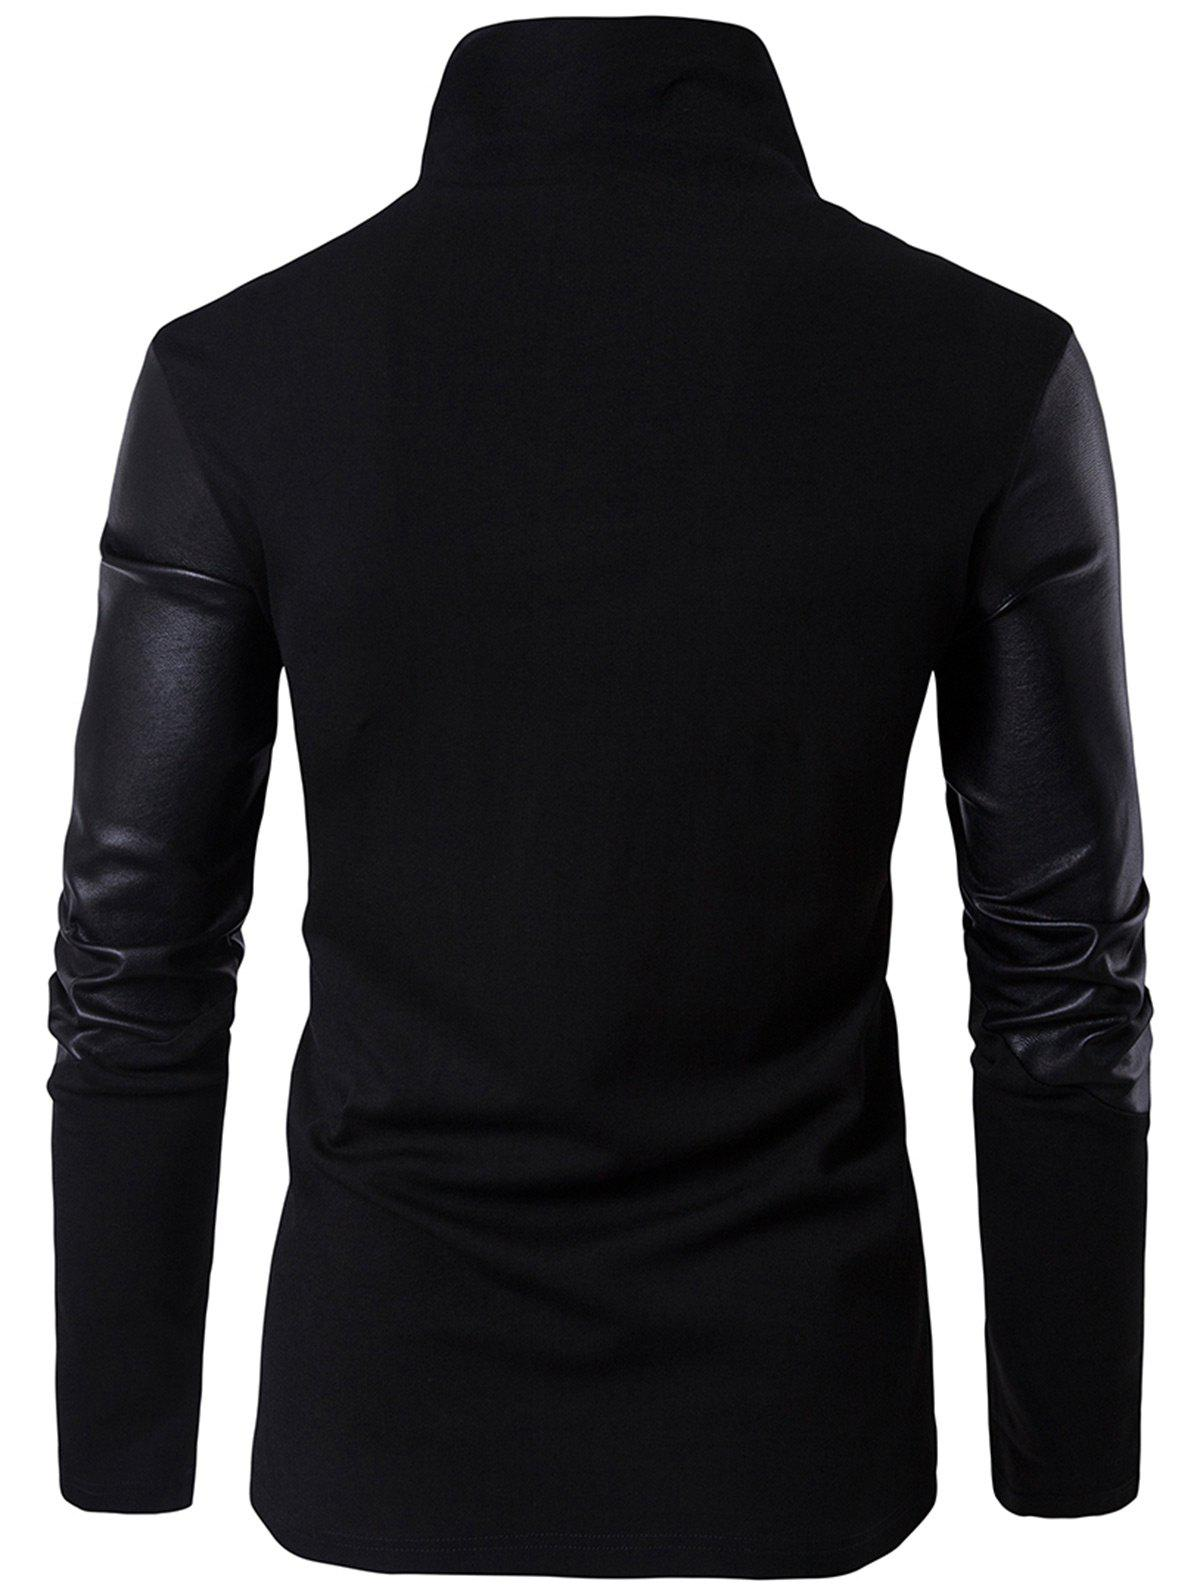 Asymmetrical Zip Faux Leather Insert Pullover Top - BLACK M